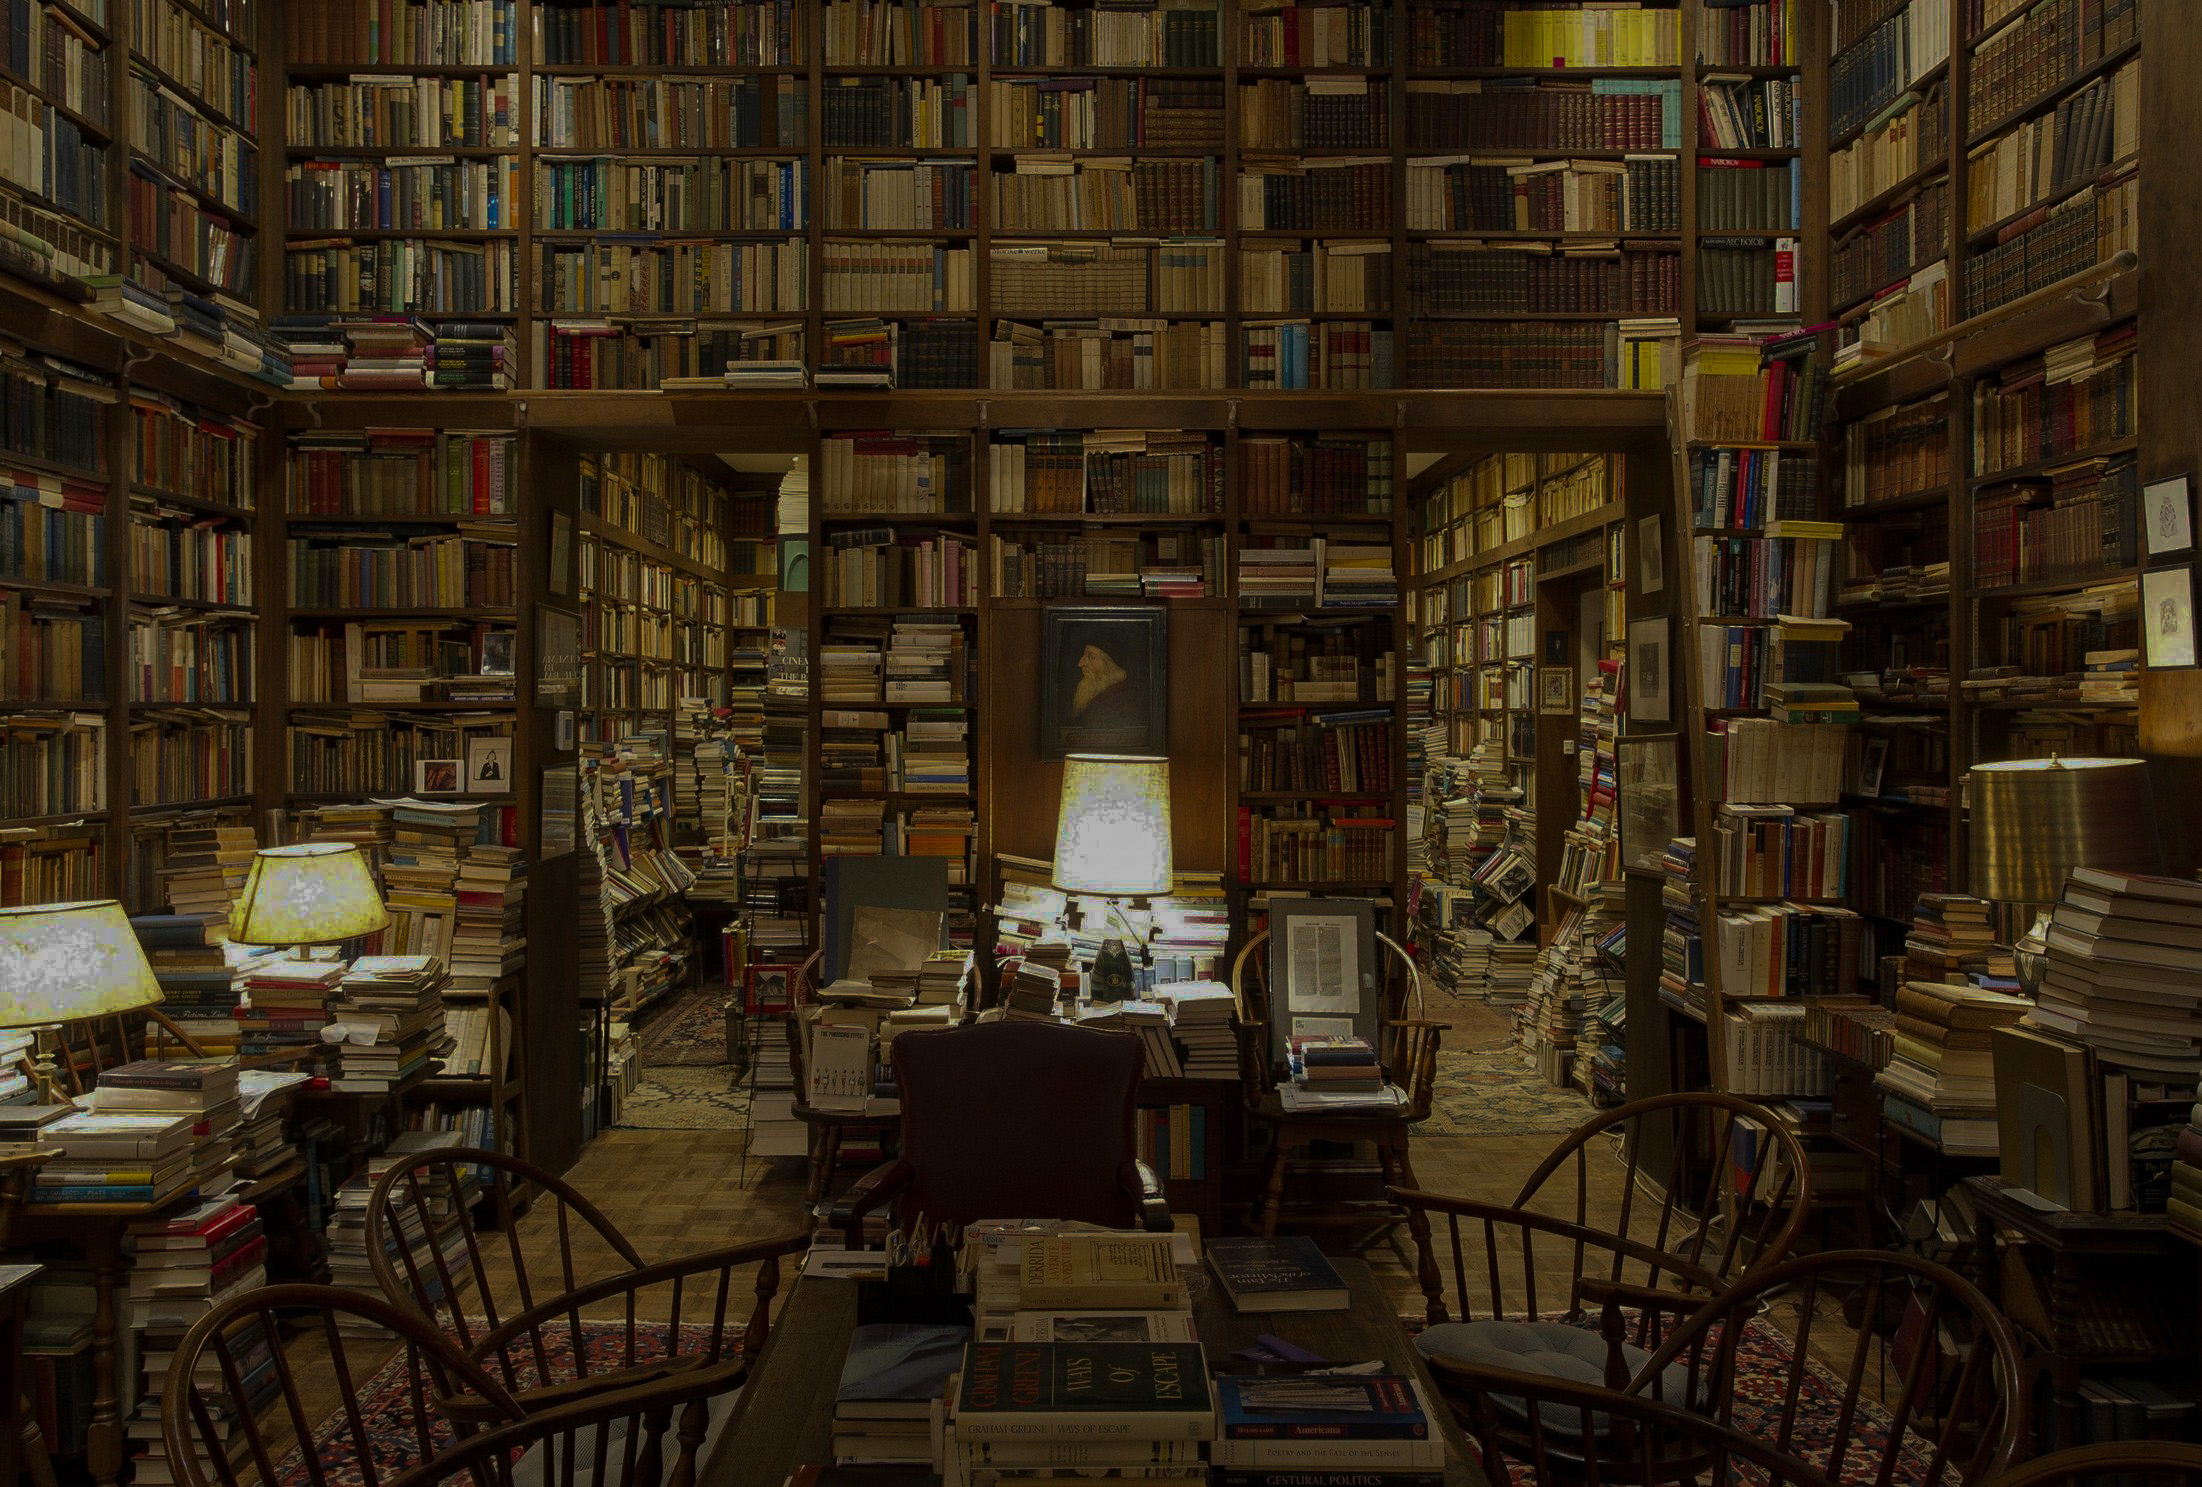 picture of an old library, with millions of books piled floor to ceiling